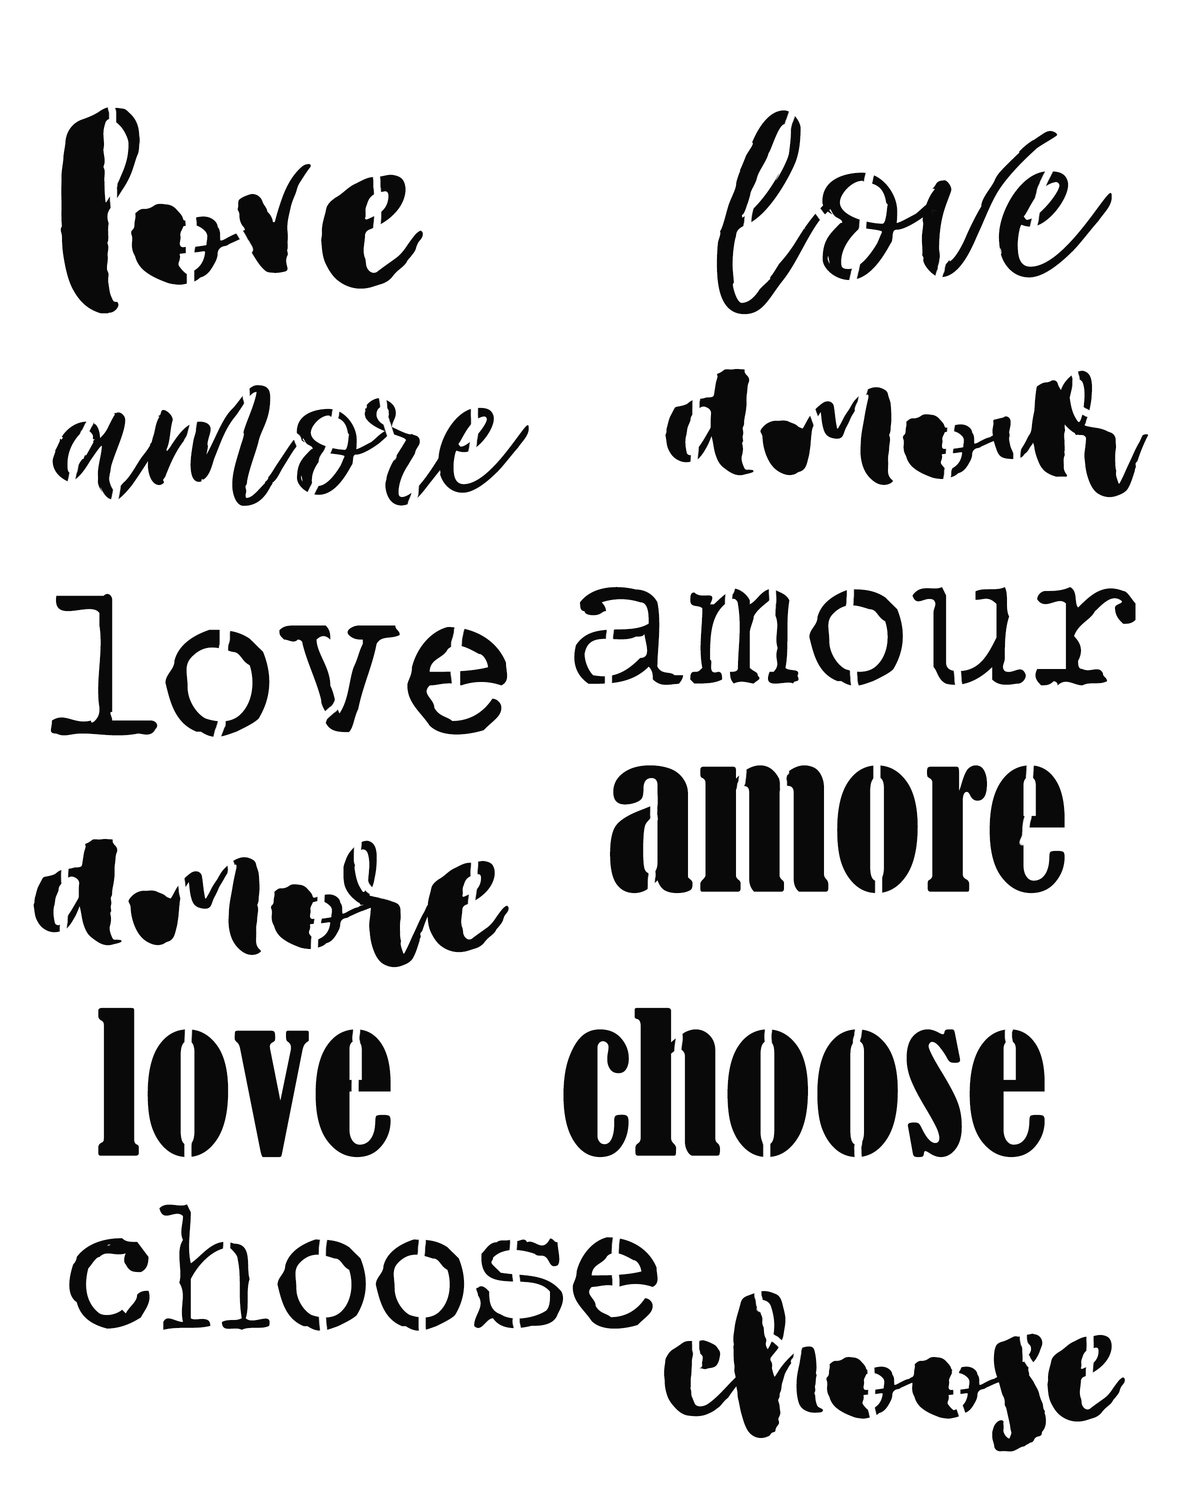 Words of love stencil 8x10